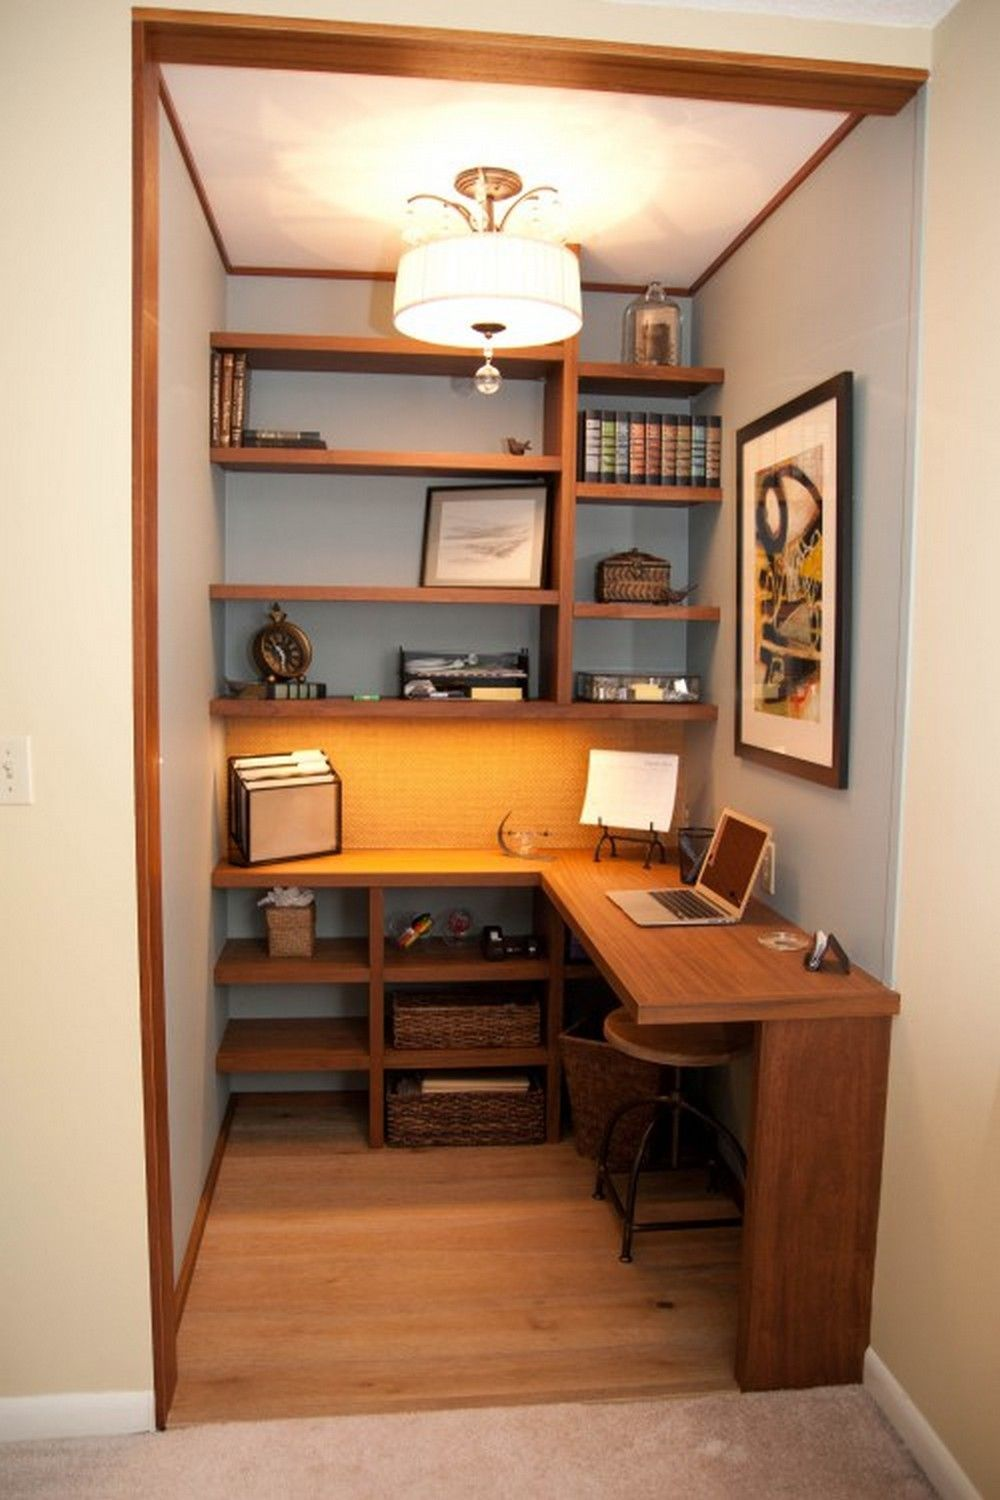 10 Small Office Bedroom Ideas Most Of The Awesome And Stunning Small Home Offices Small Office Design Small Office Room